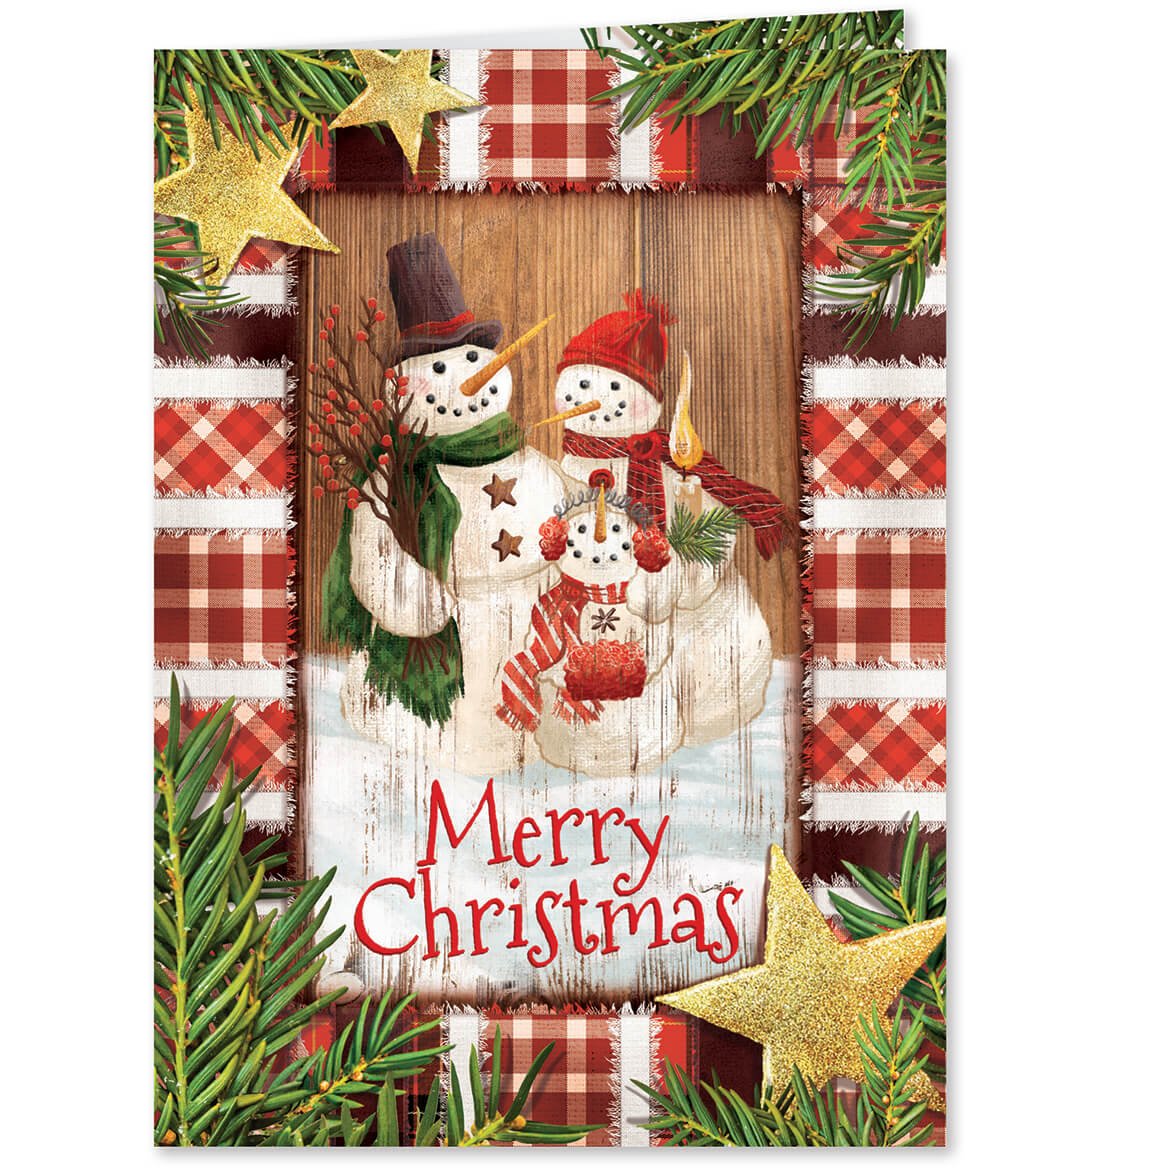 calico snowman personalized christmas cards set of 20 miles kimball calico snowman christmas card set of 20